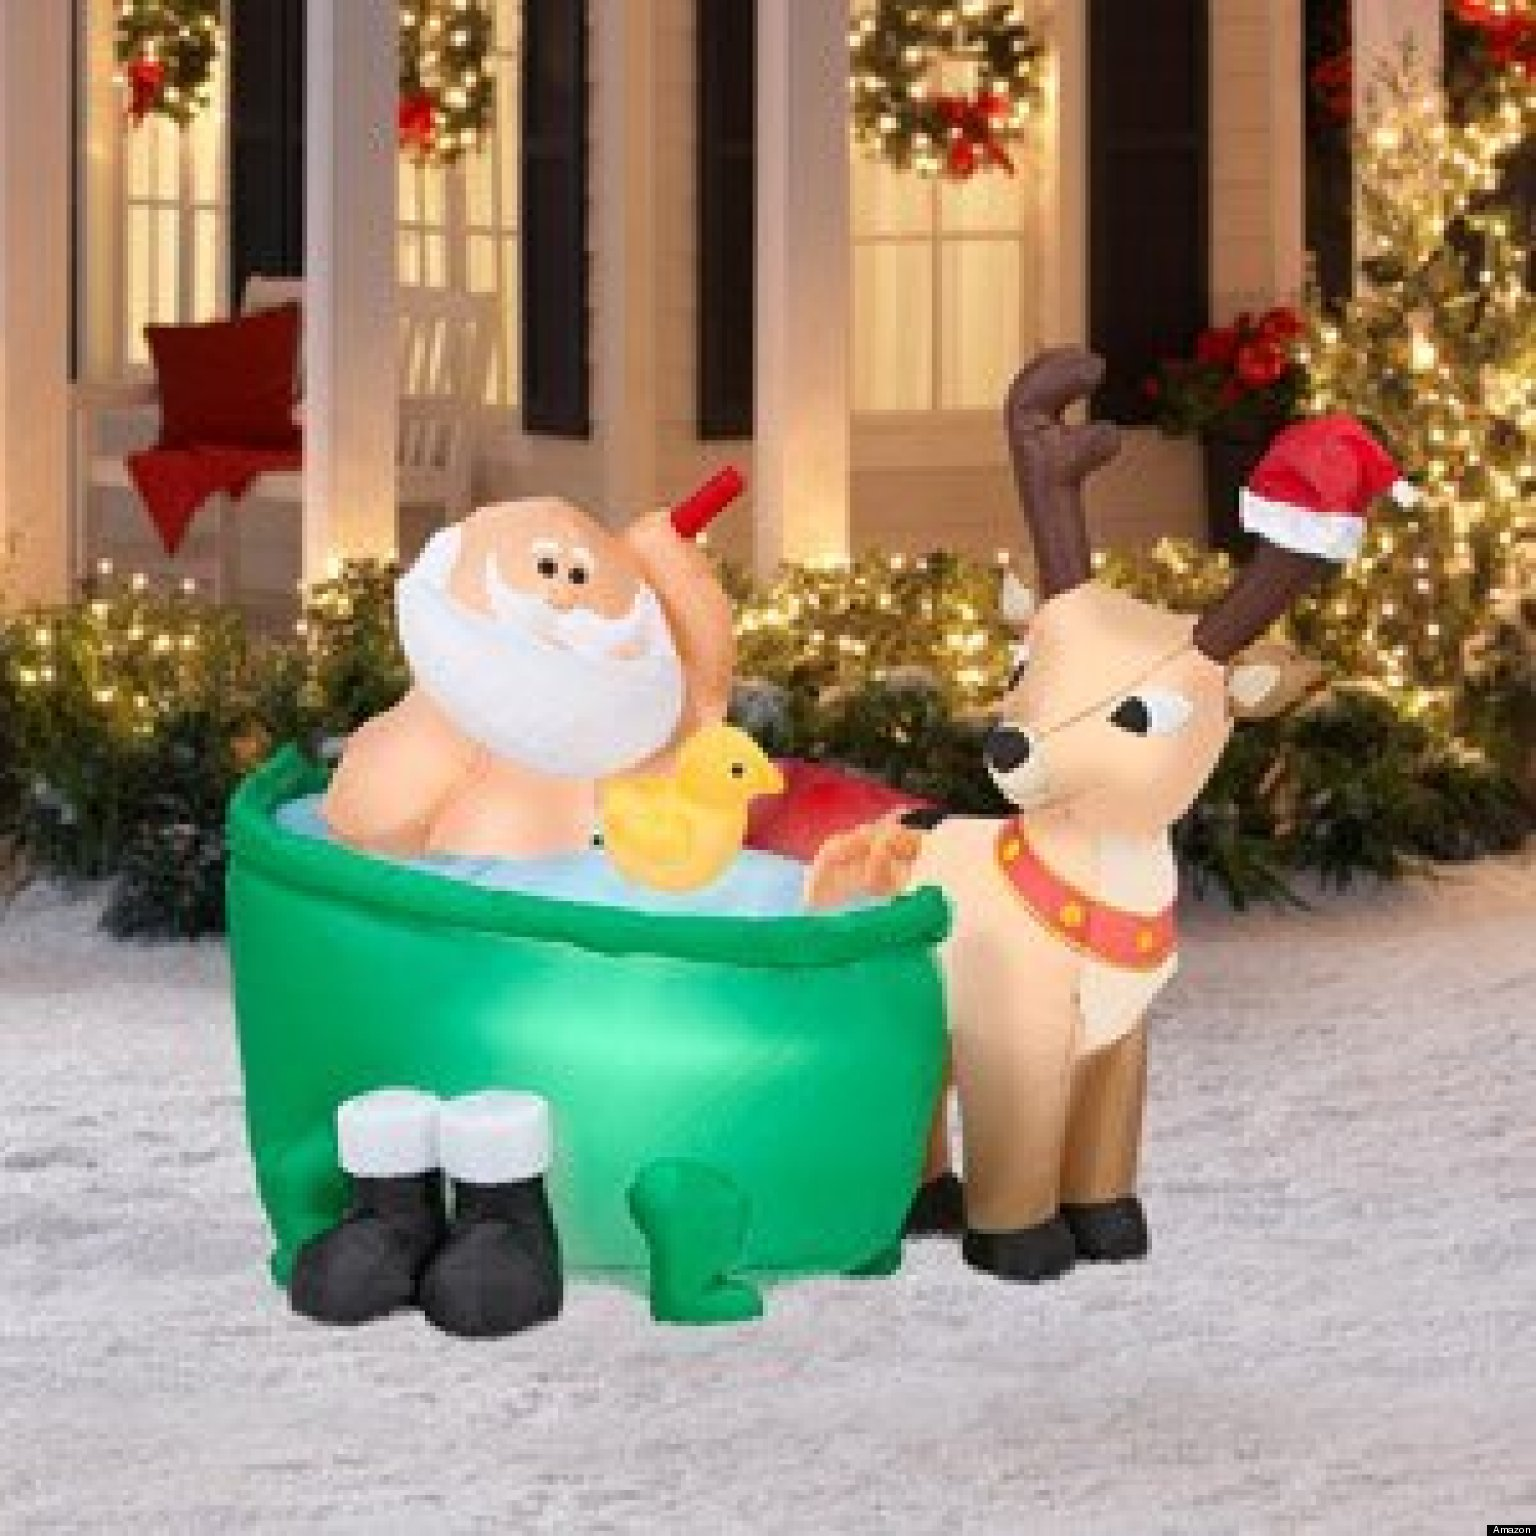 Stupendous Worst Inflatable Christmas Decorations Photos The Huffington Post Easy Diy Christmas Decorations Tissureus